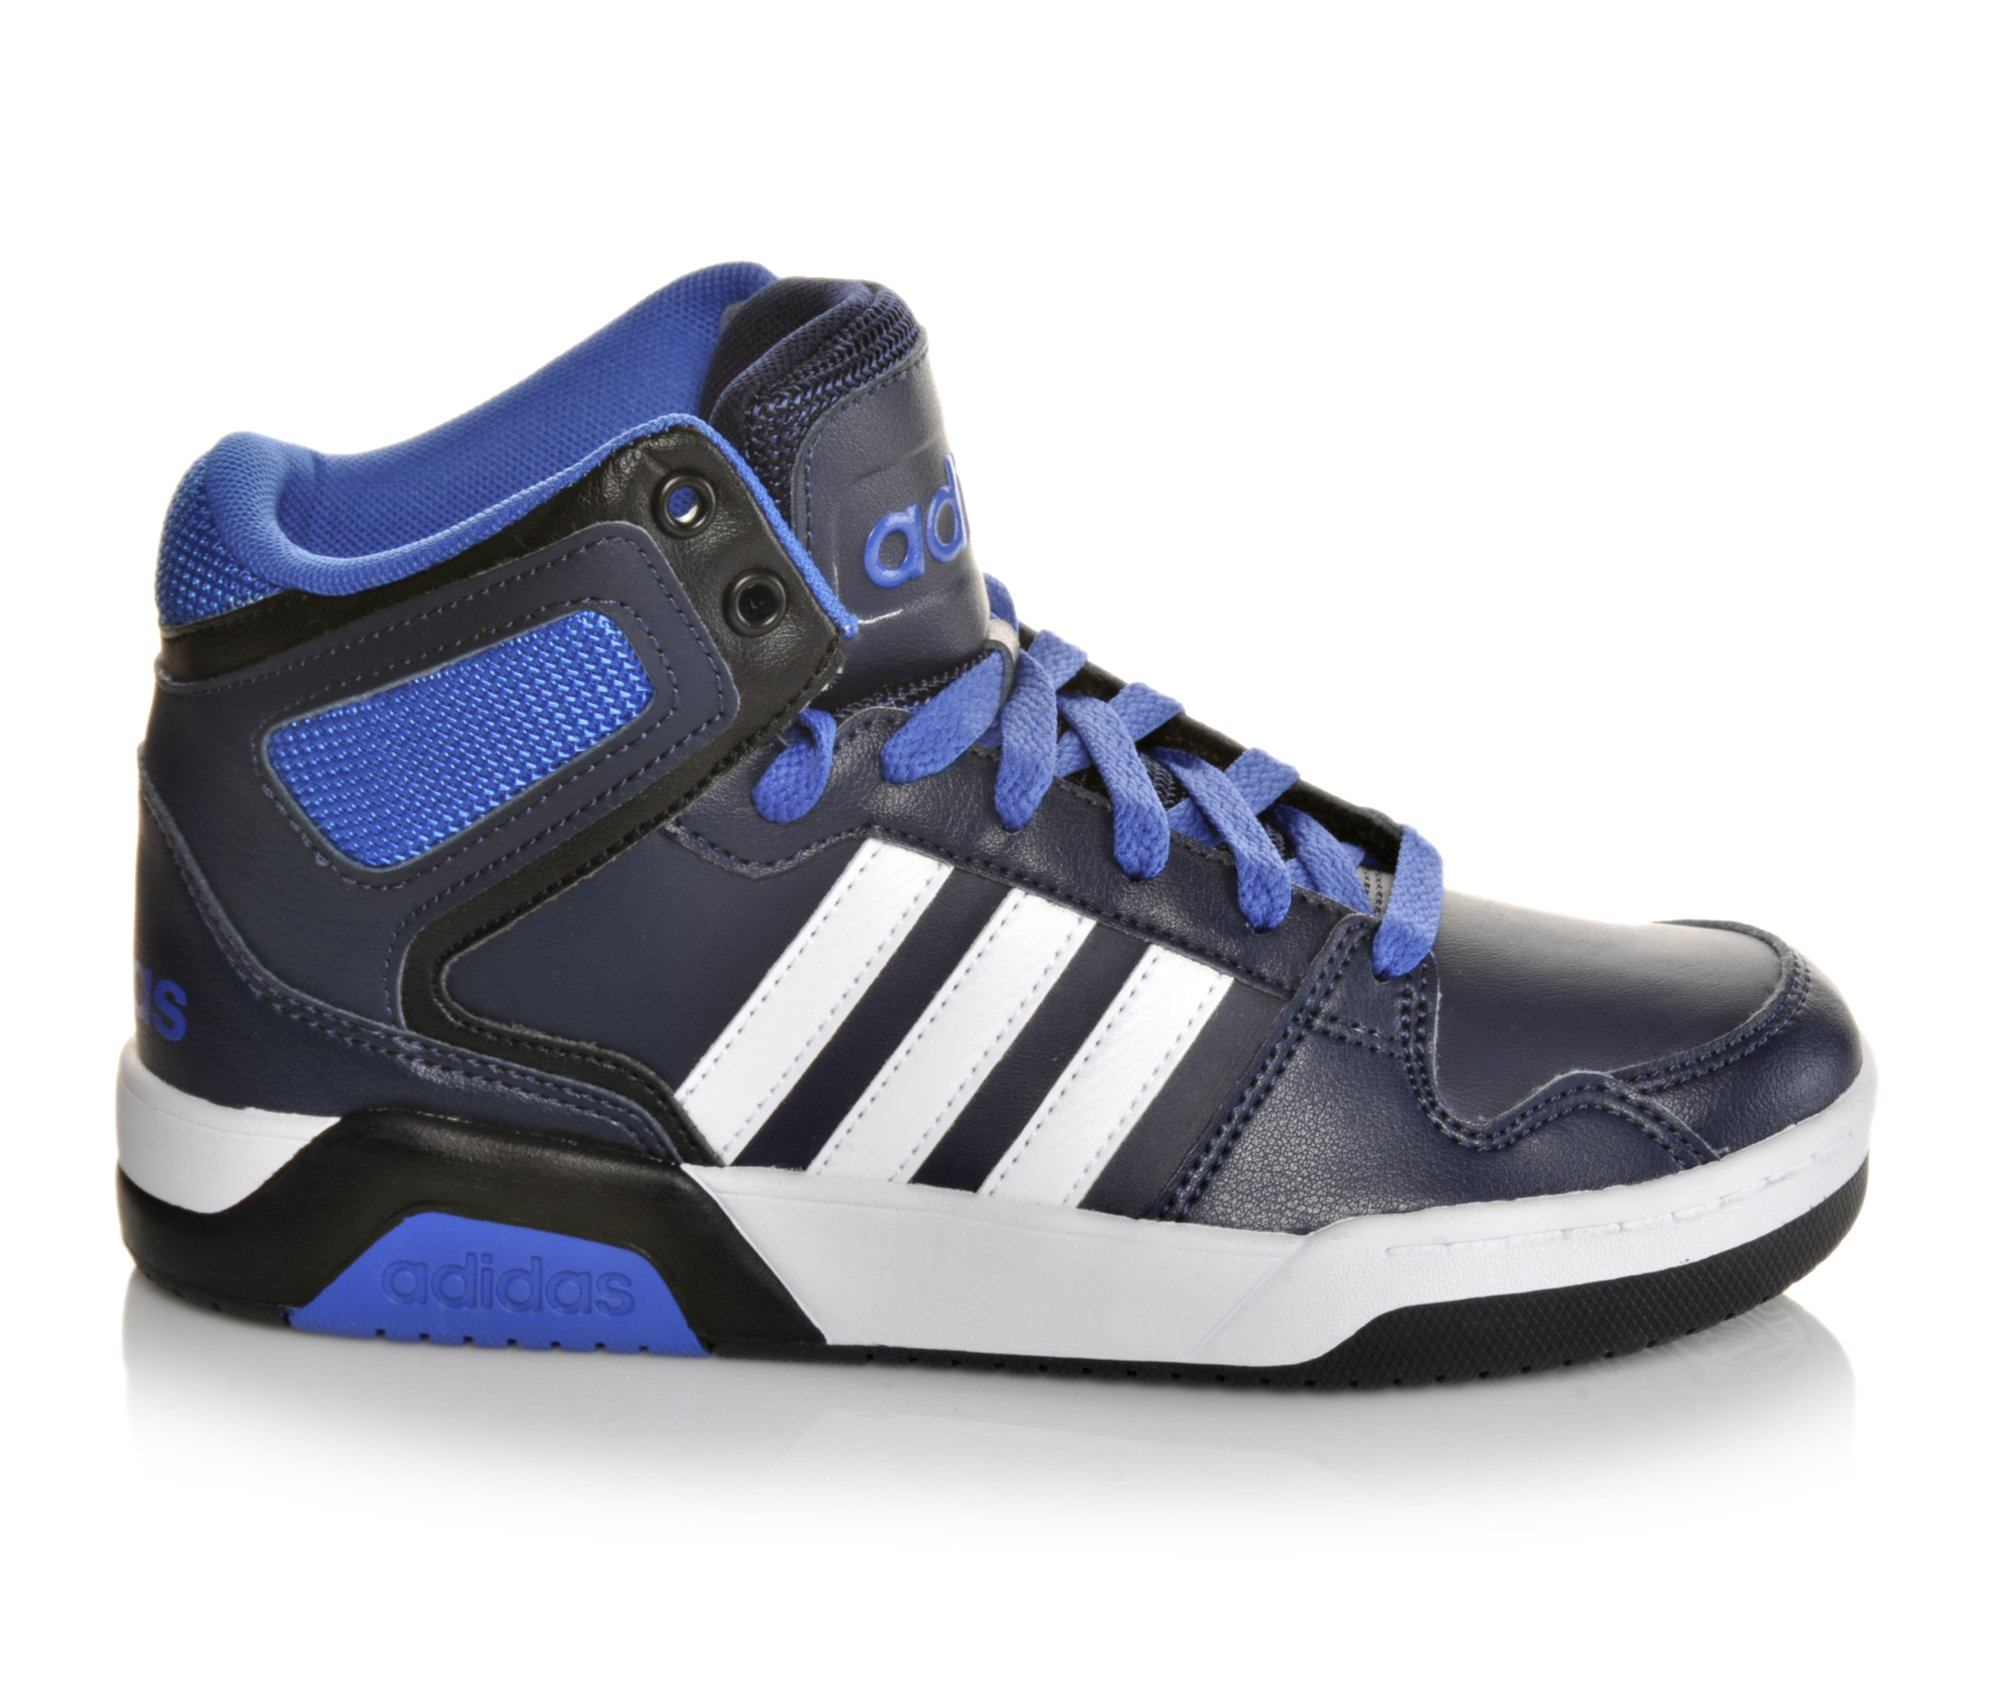 Adidas Shoes Kmart